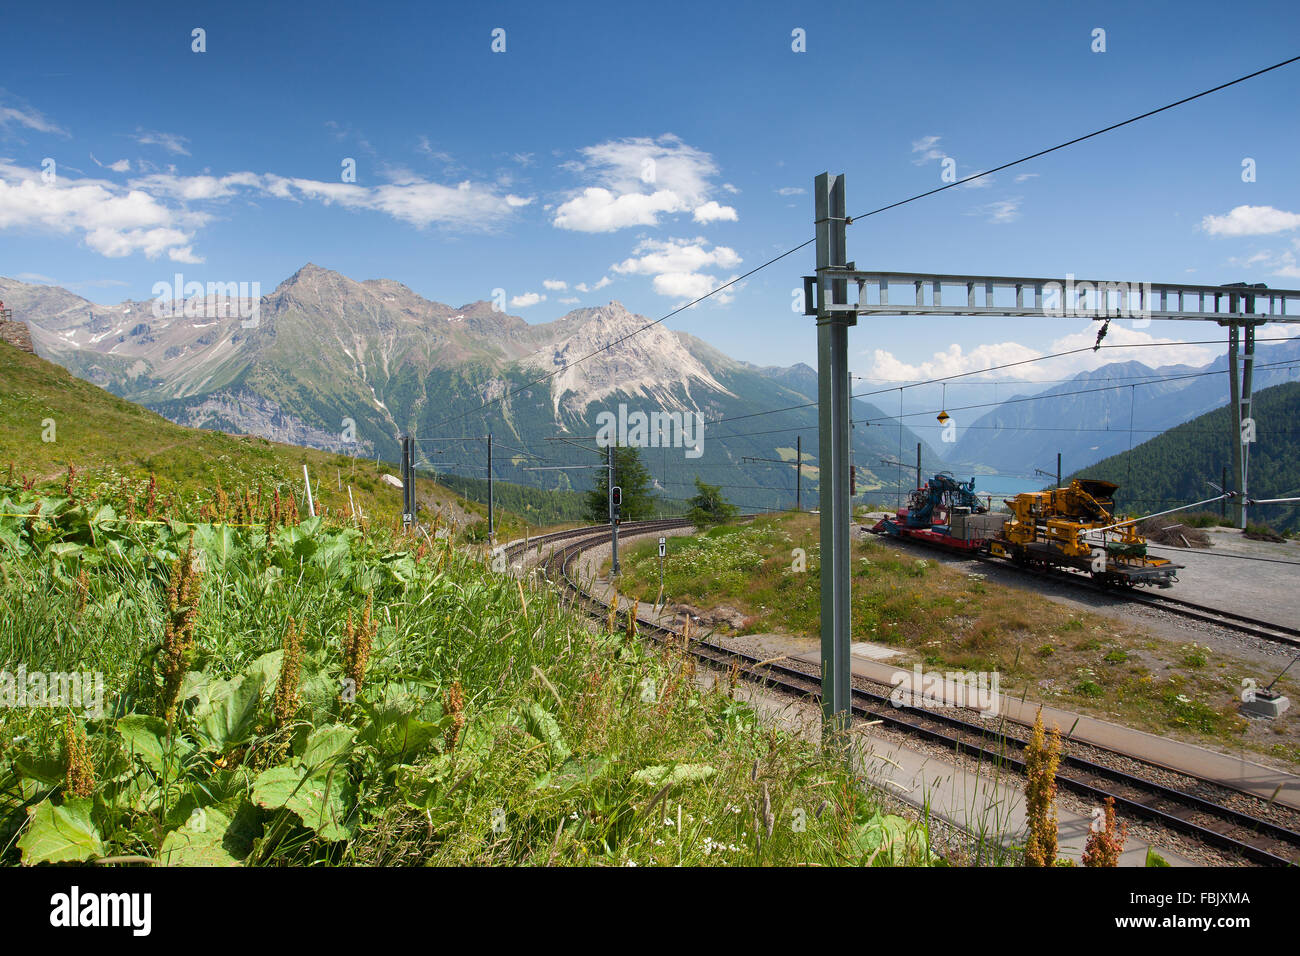 Alp Grum railway station is situated on the Bernina Railway, between Pontresina, in the Canton of Graubunden, Switzerland - Stock Image